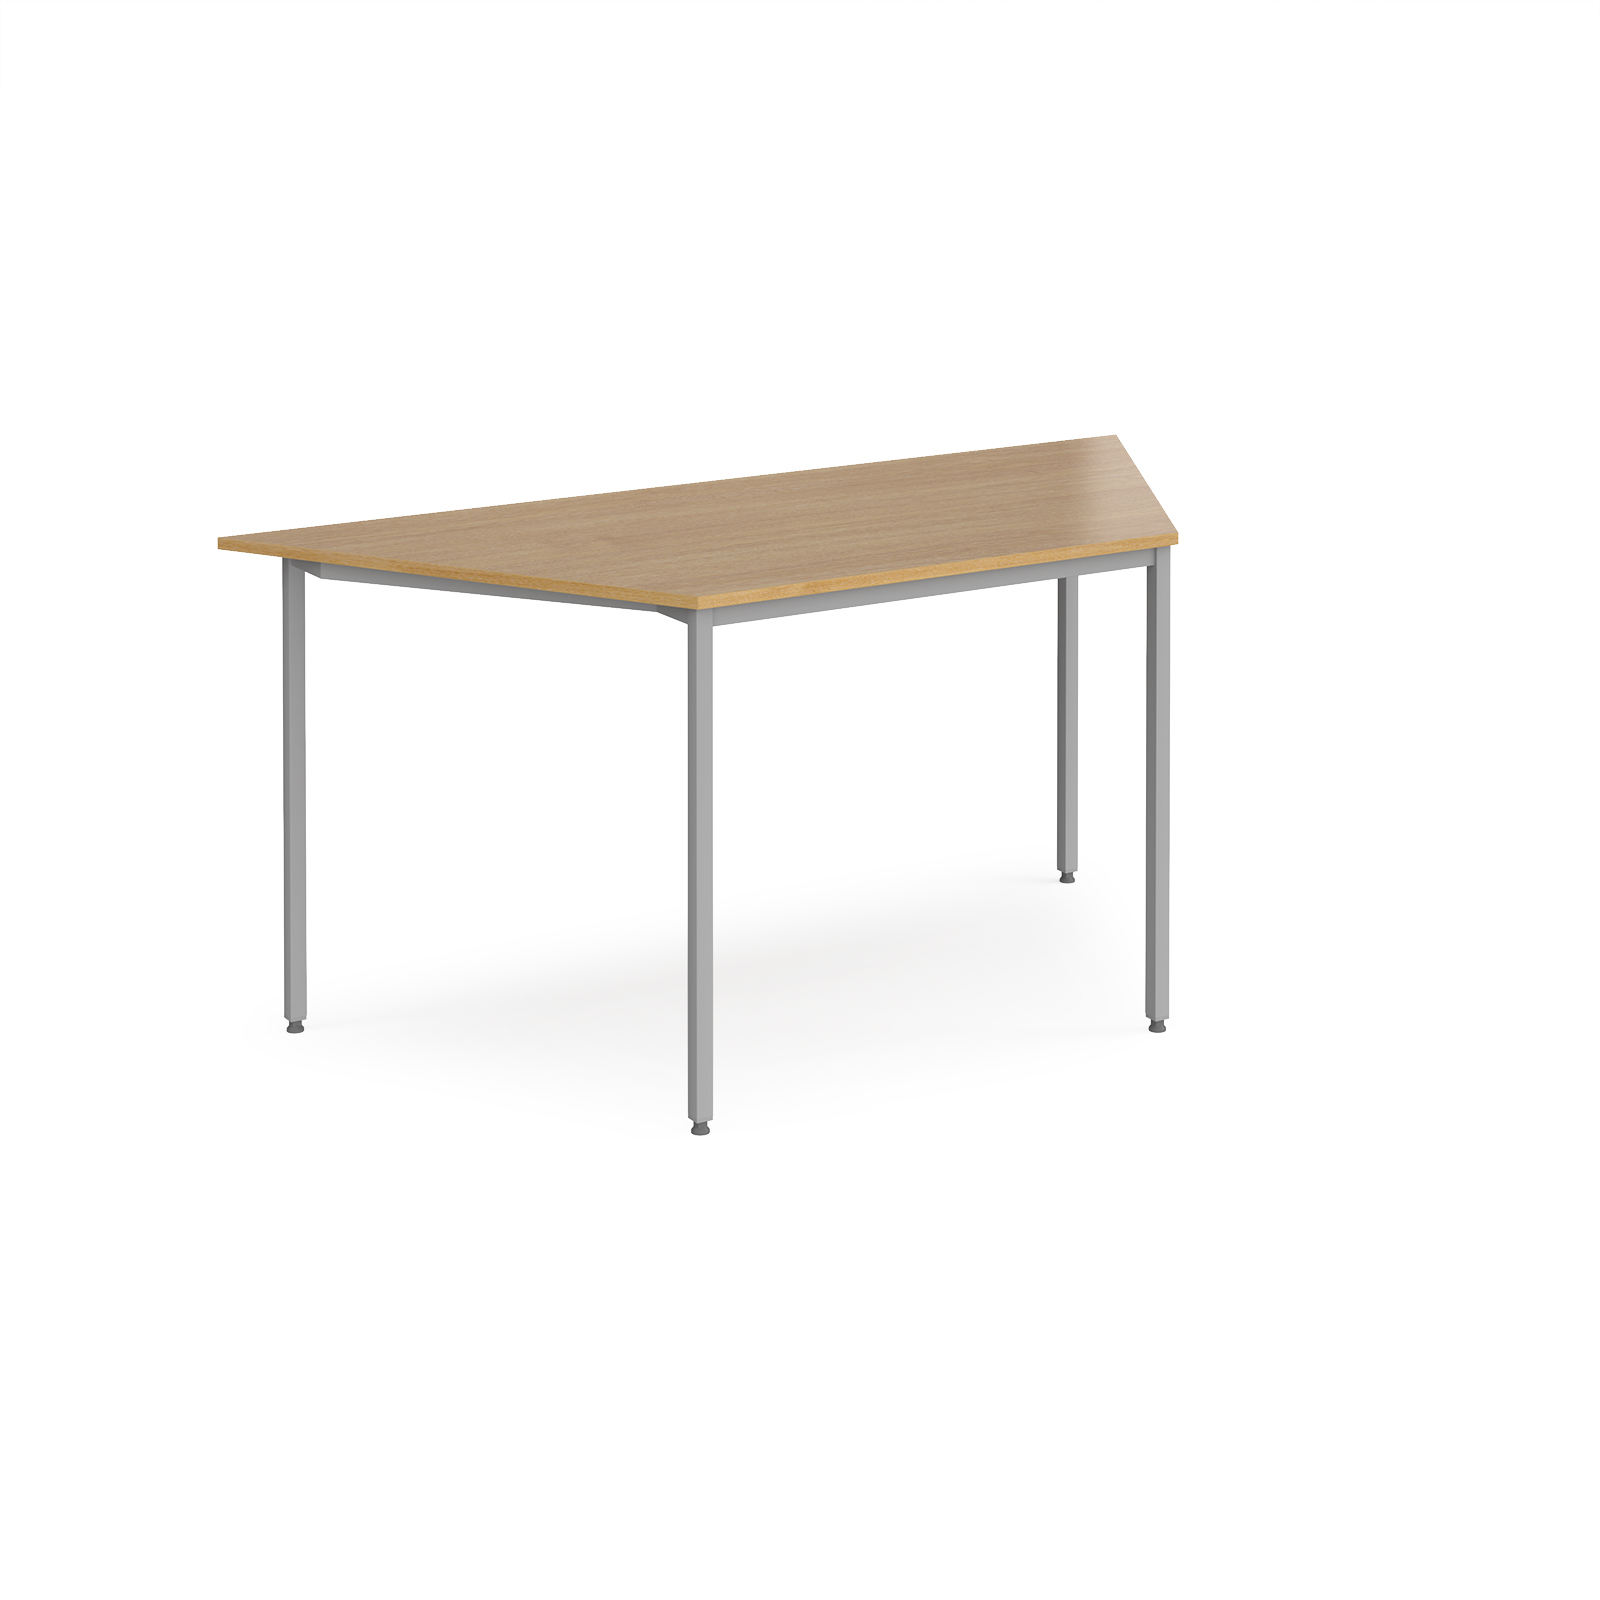 Trapezoidal flexi table with silver frame 1600mm x 800mm - oak